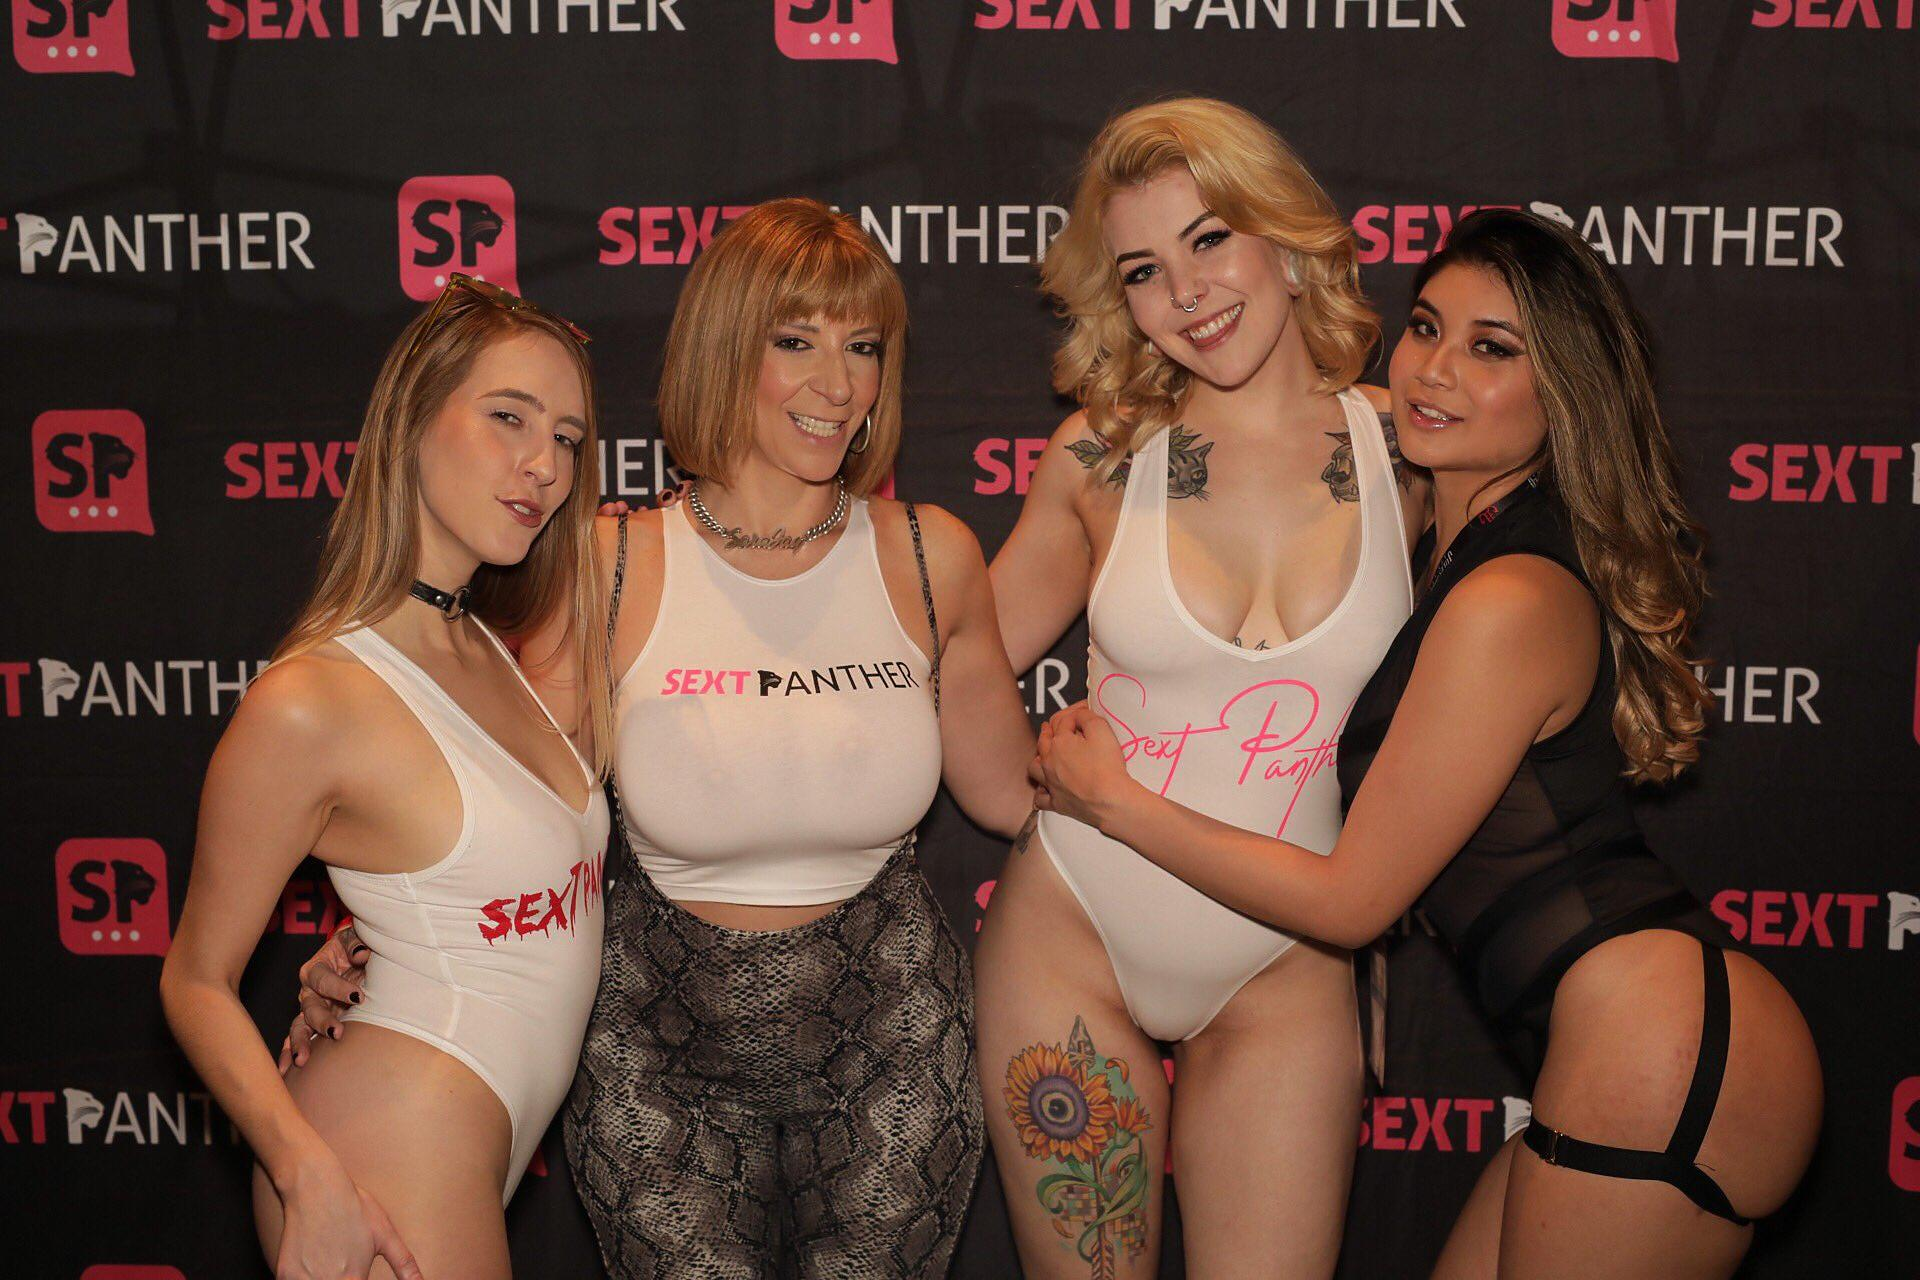 SextPanther review 1 - 23 best porn apps